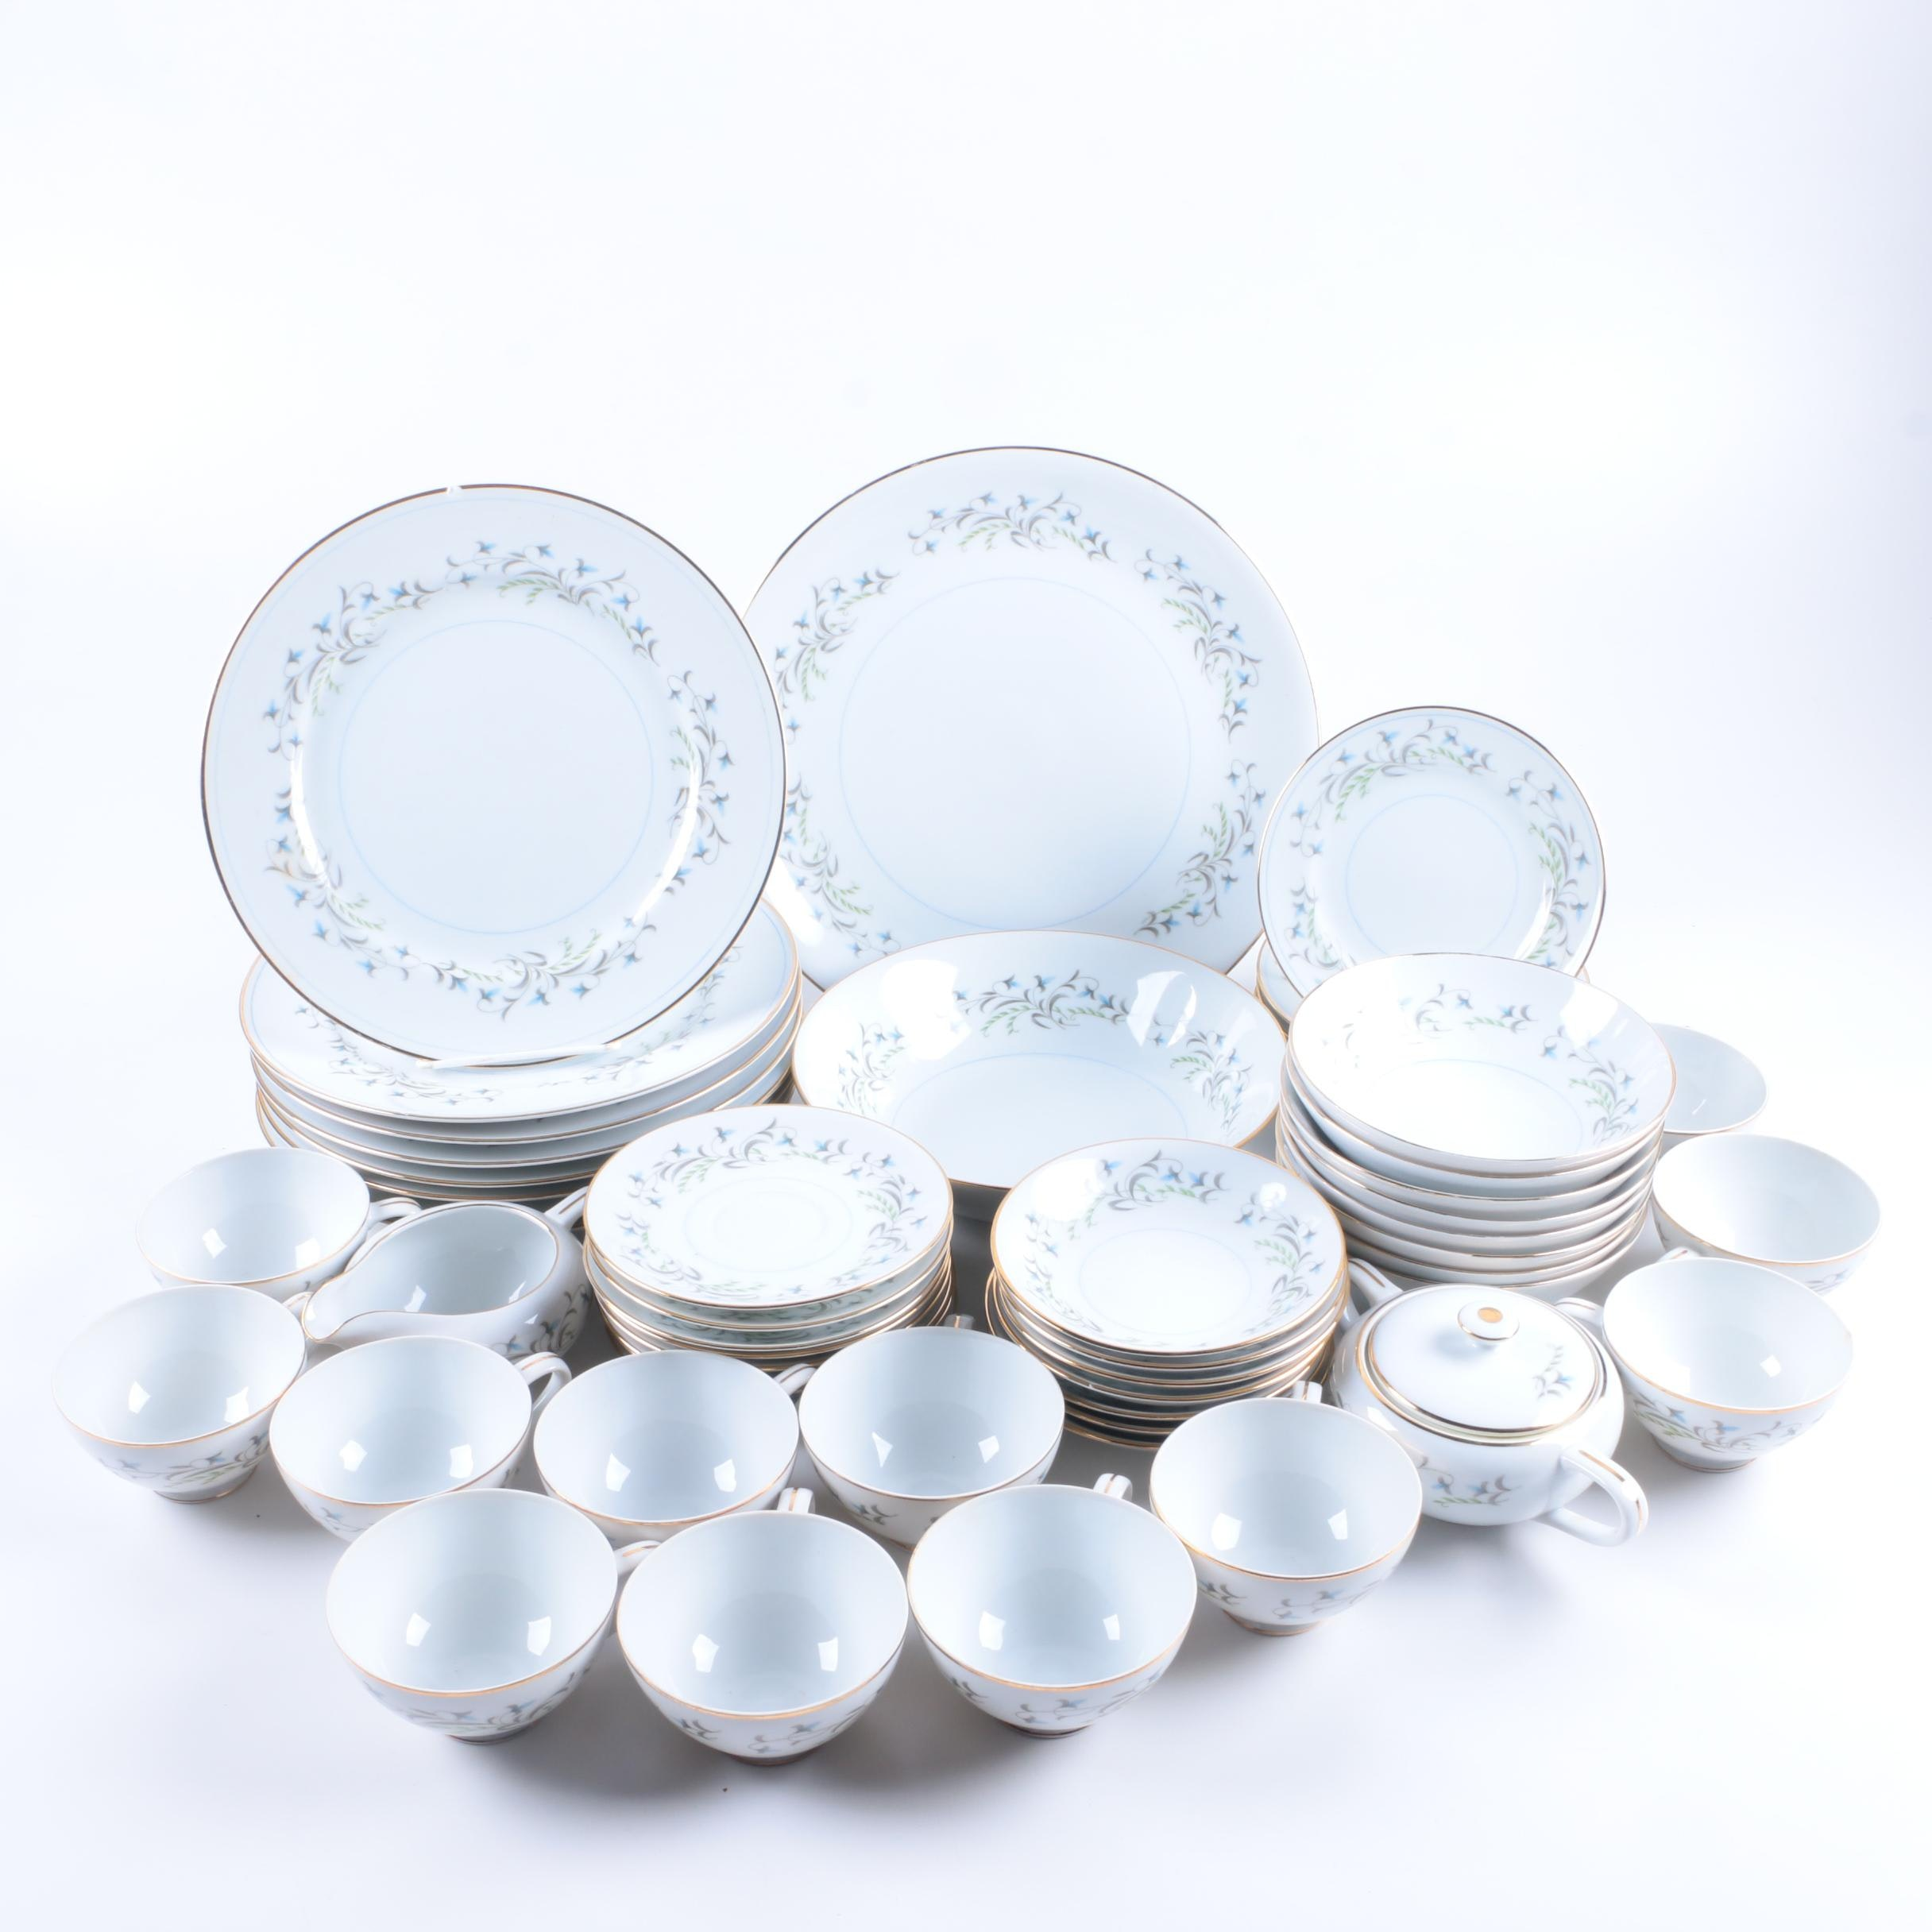 Cecelia Japan Porcelain Tableware